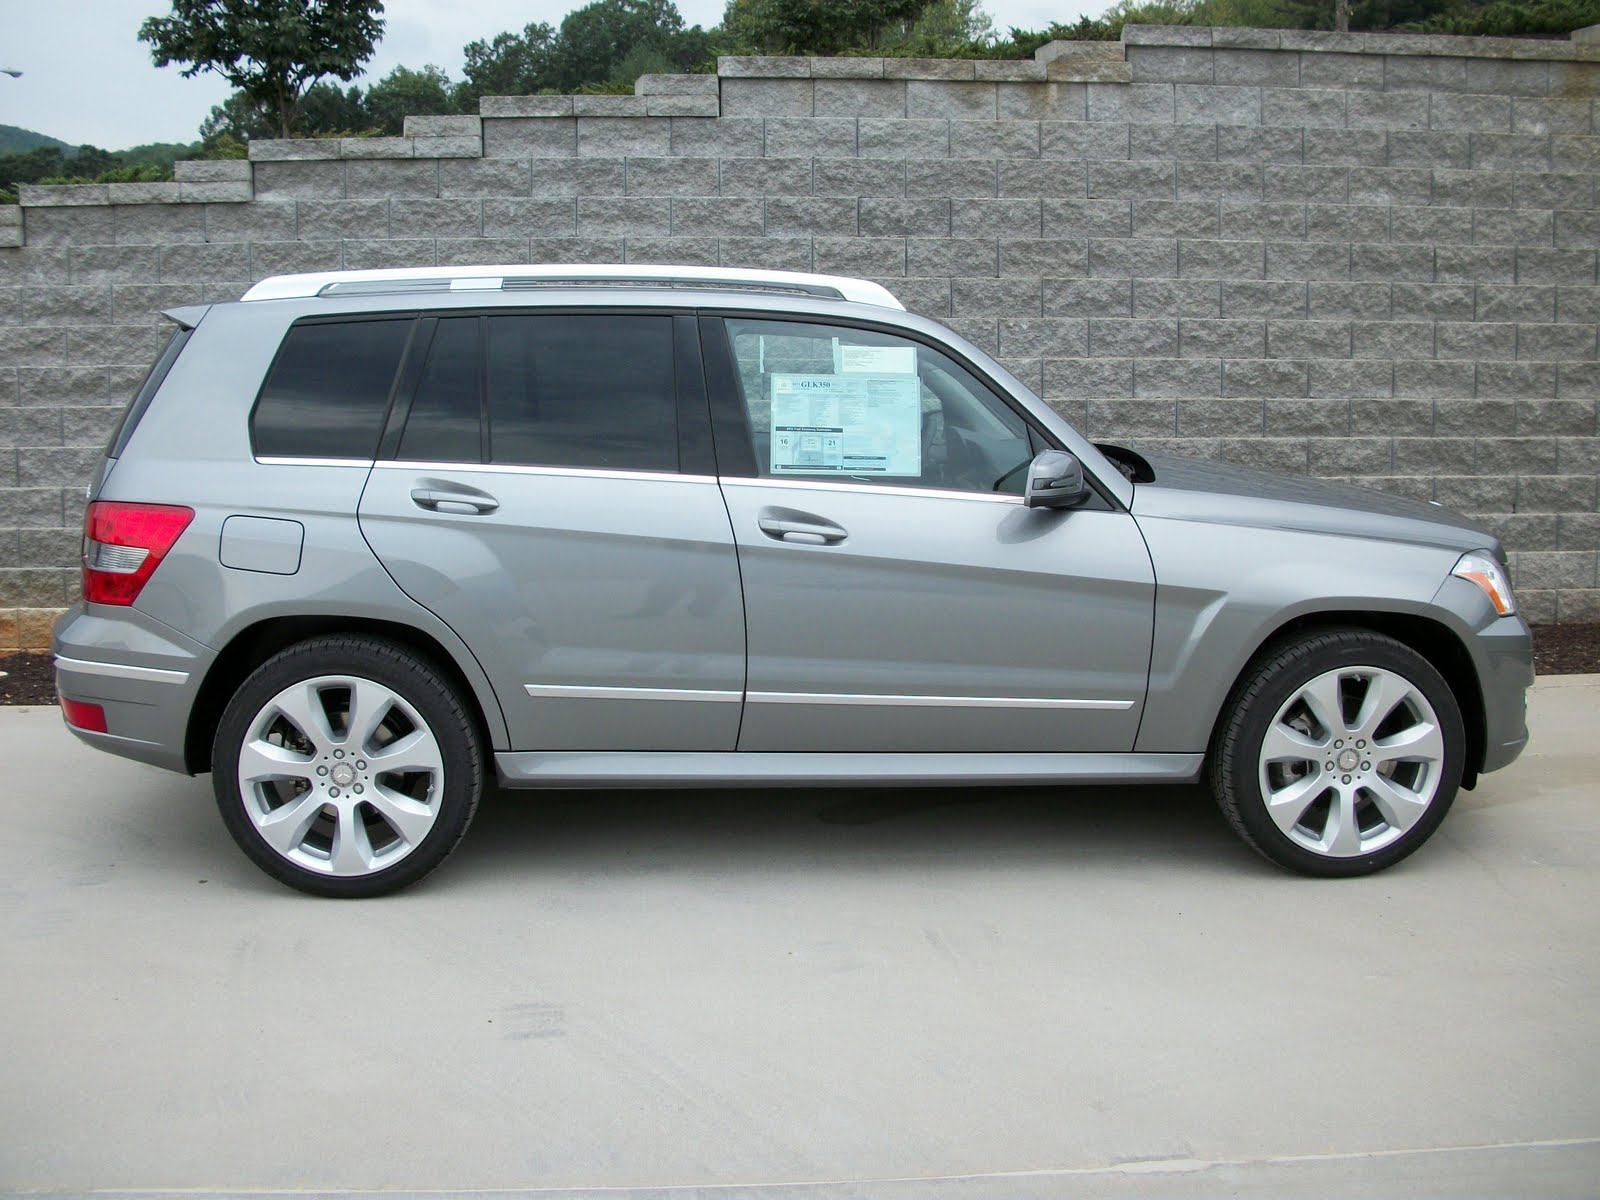 2011 mercedes benz glk350 w4 p1 multi media sport for Mercedes benz glk350 2011